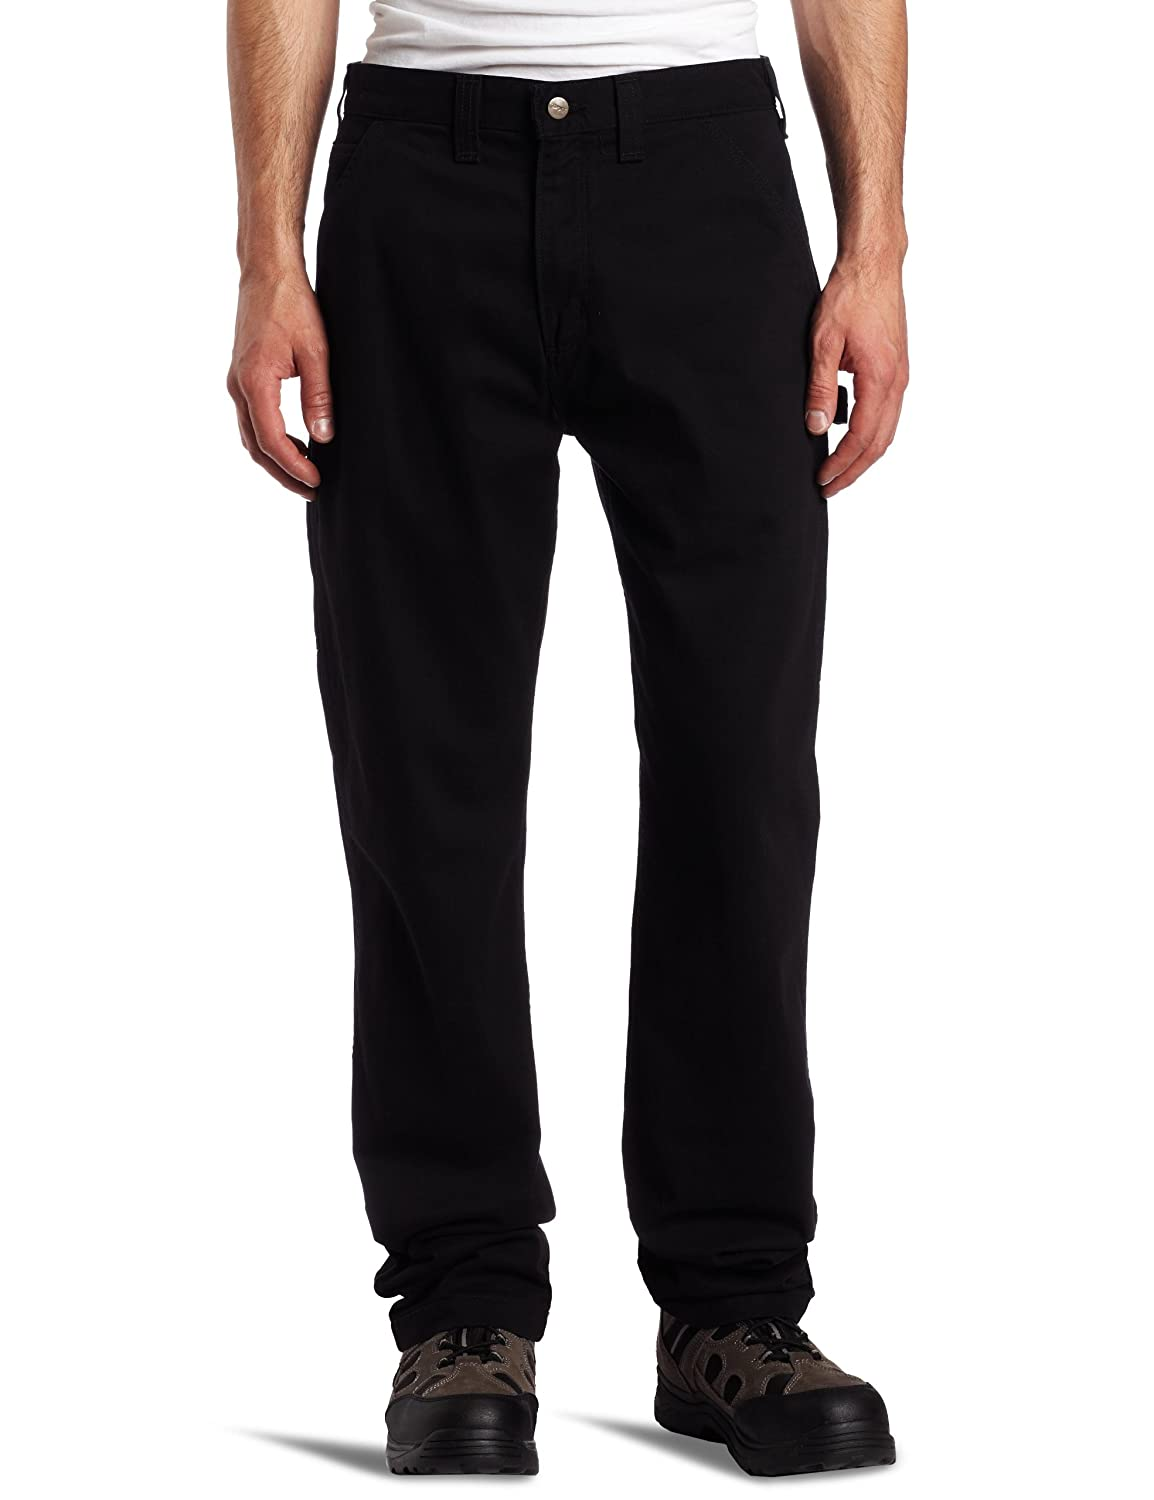 Carhartt Mens Relaxed-Fit Washed Twill Dungaree Pant